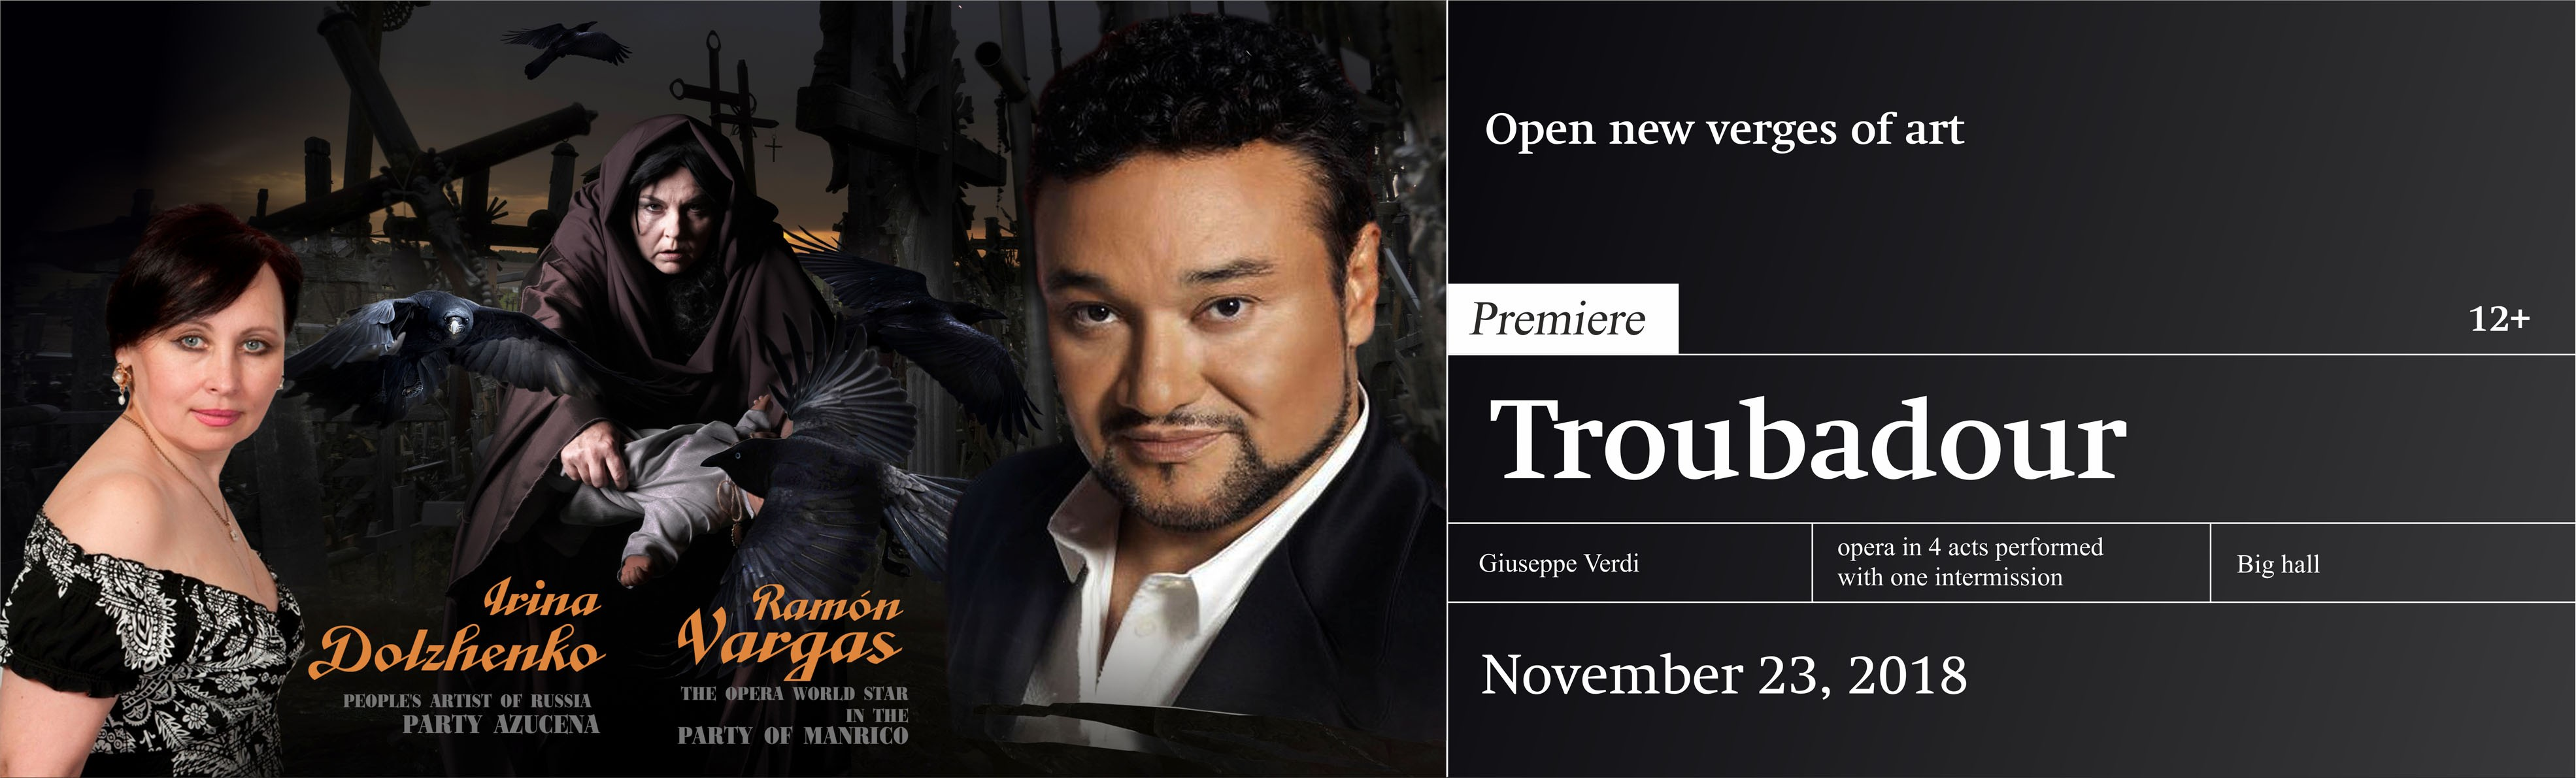 Premiere of the Opera «Troubadour»